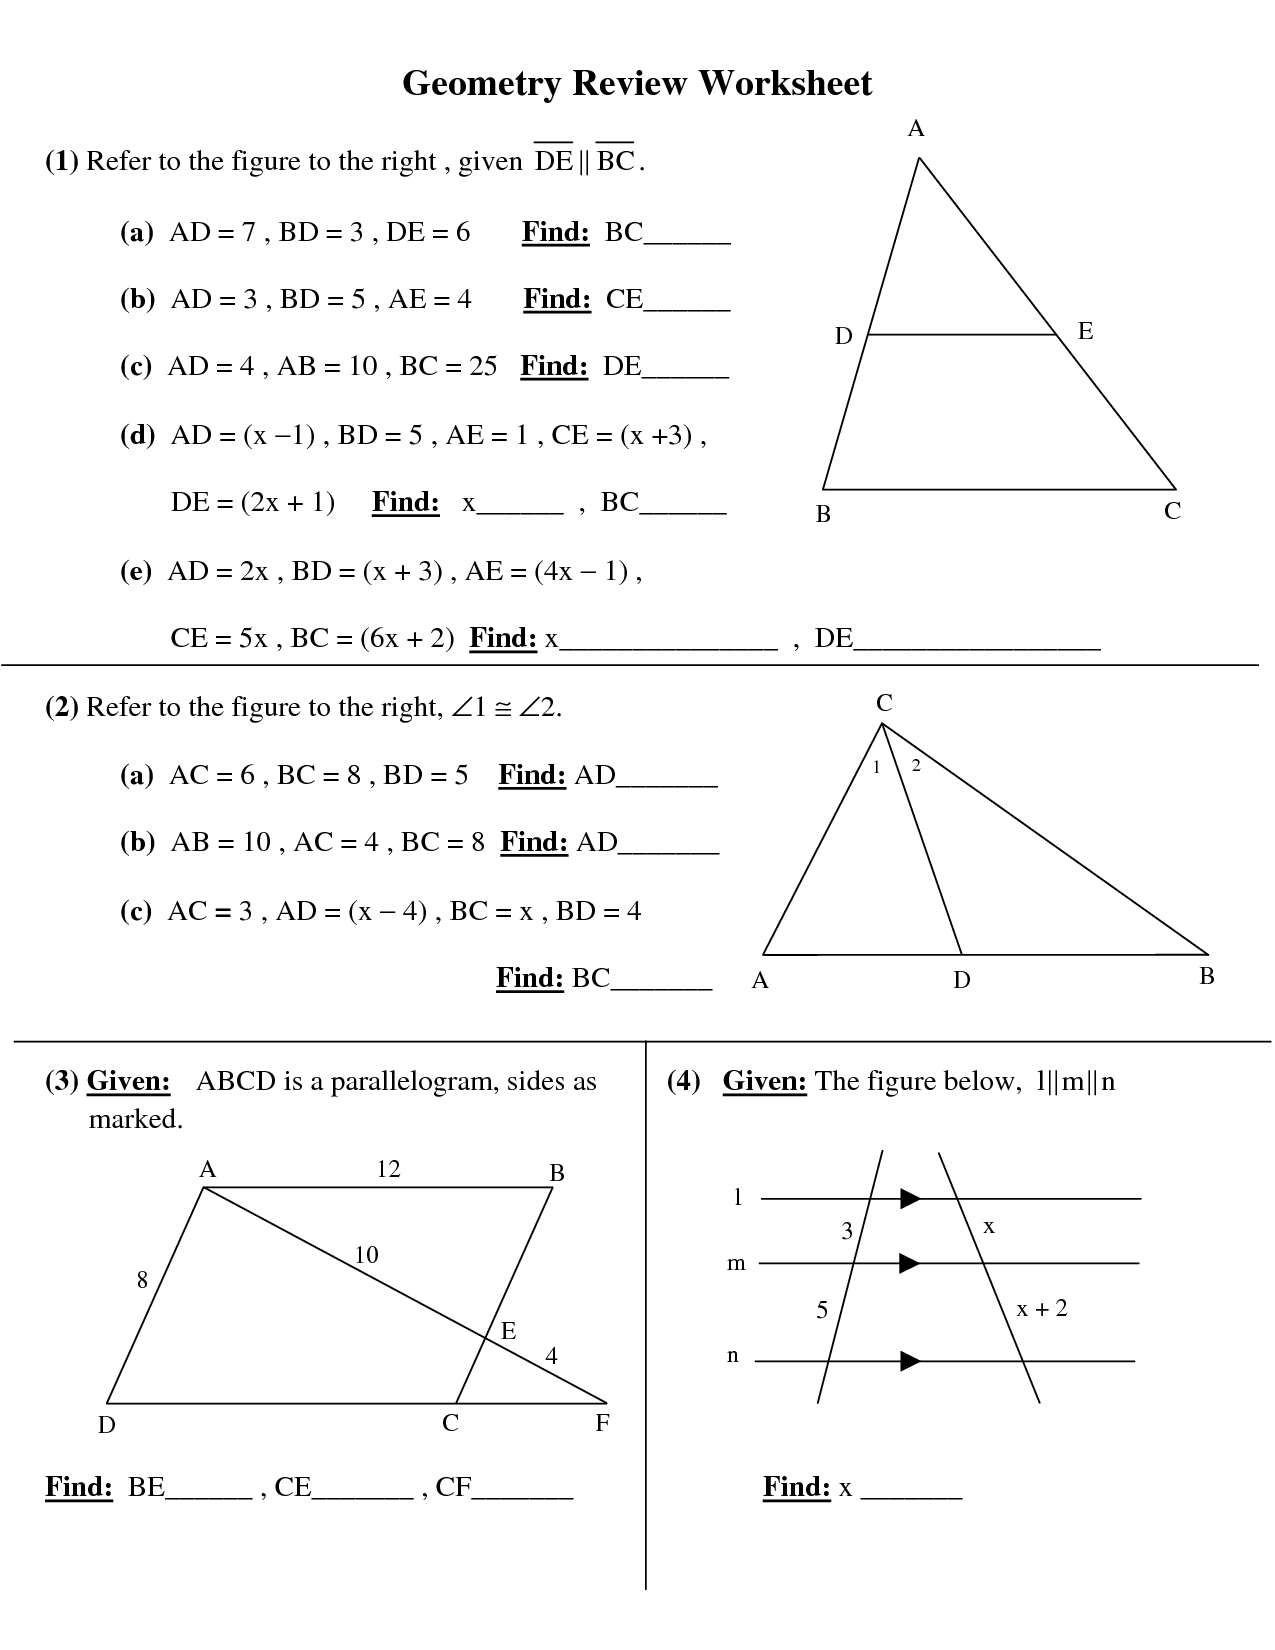 Printables Geometry Worksheets With Answers worksheet geometry worksheets for high school kerriwaller math delwfg com polygon com